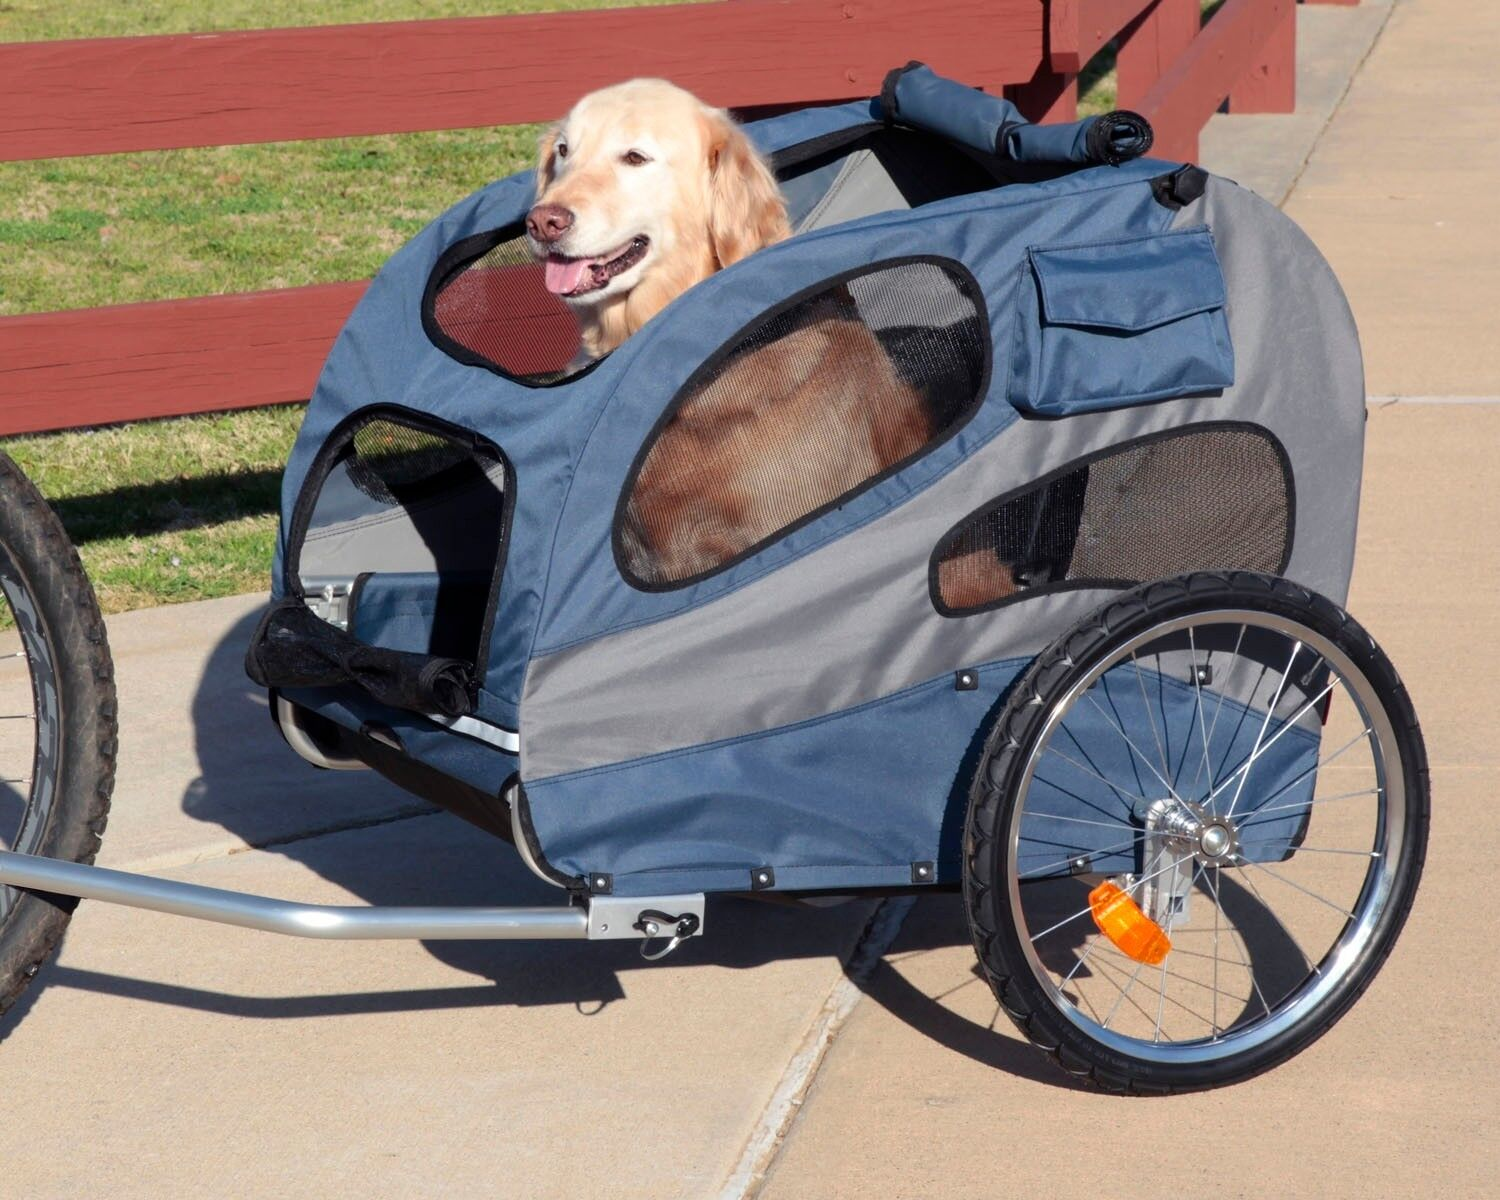 Large Dog Carrier For Bicycle